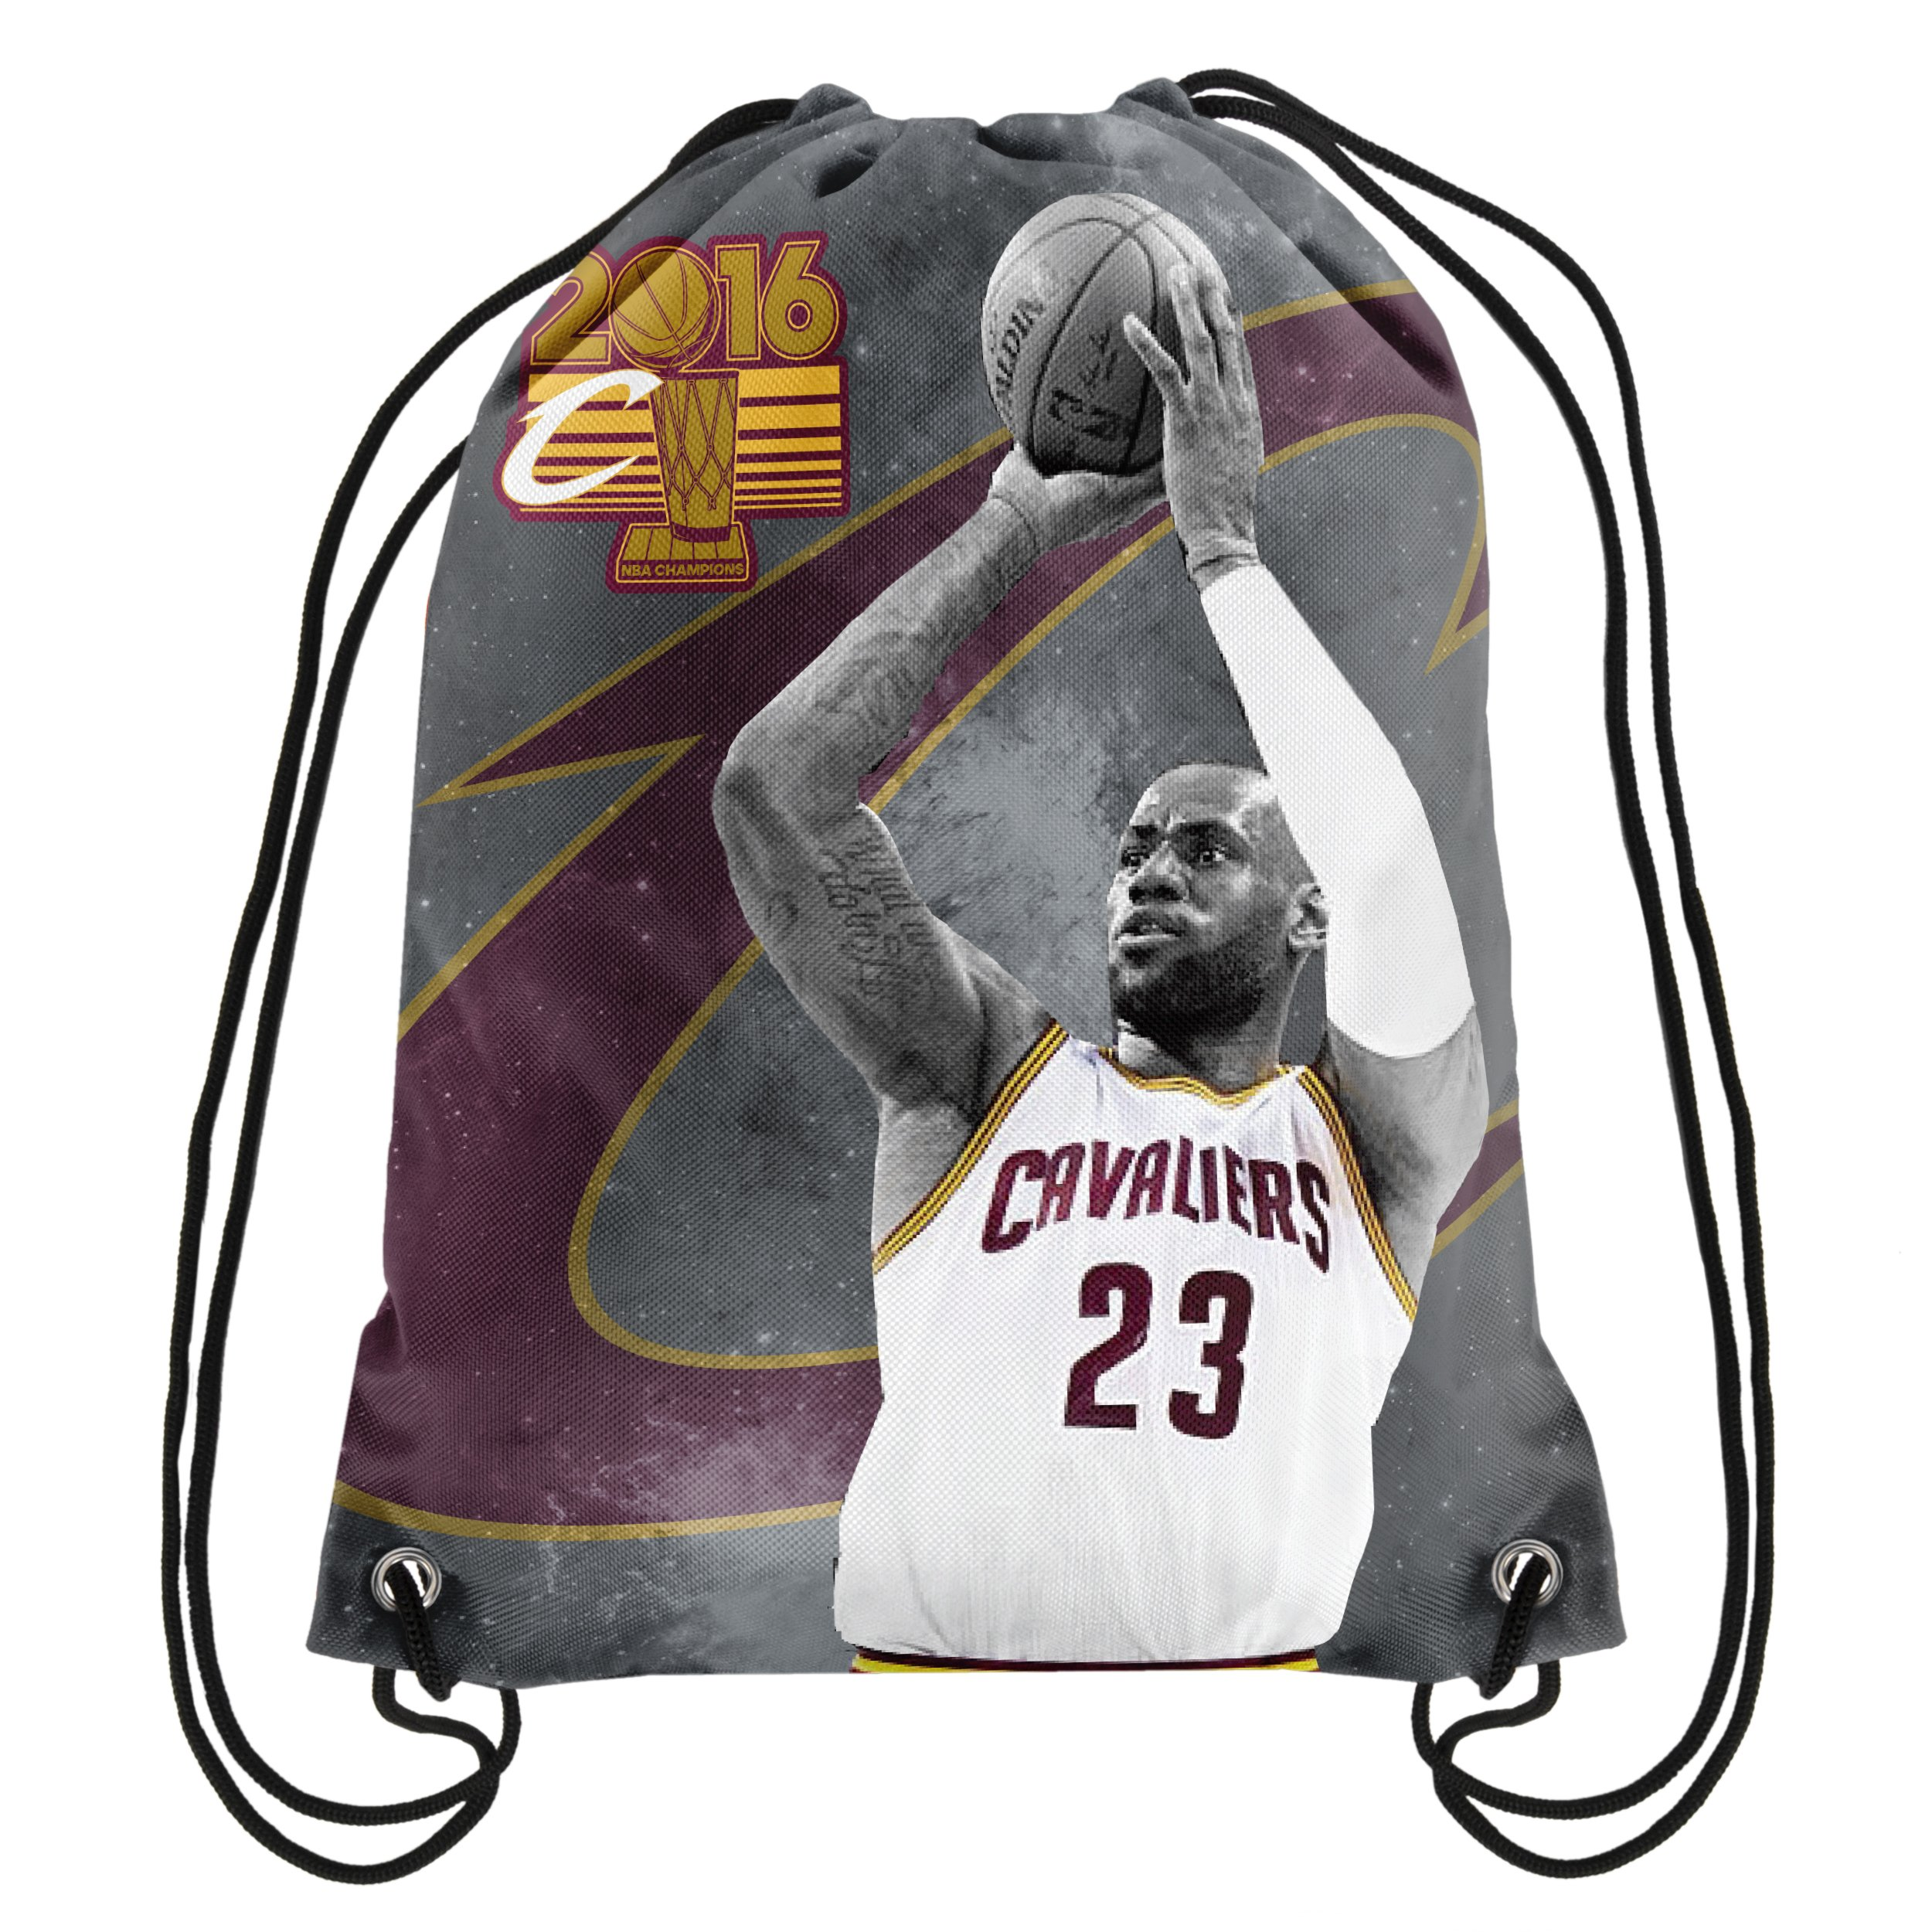 db46b91cac23 Get Quotations · Cleveland Cavaliers 2016 NBA Champions Player Image  Drawstring Backpack Gym Bag - Lebron James